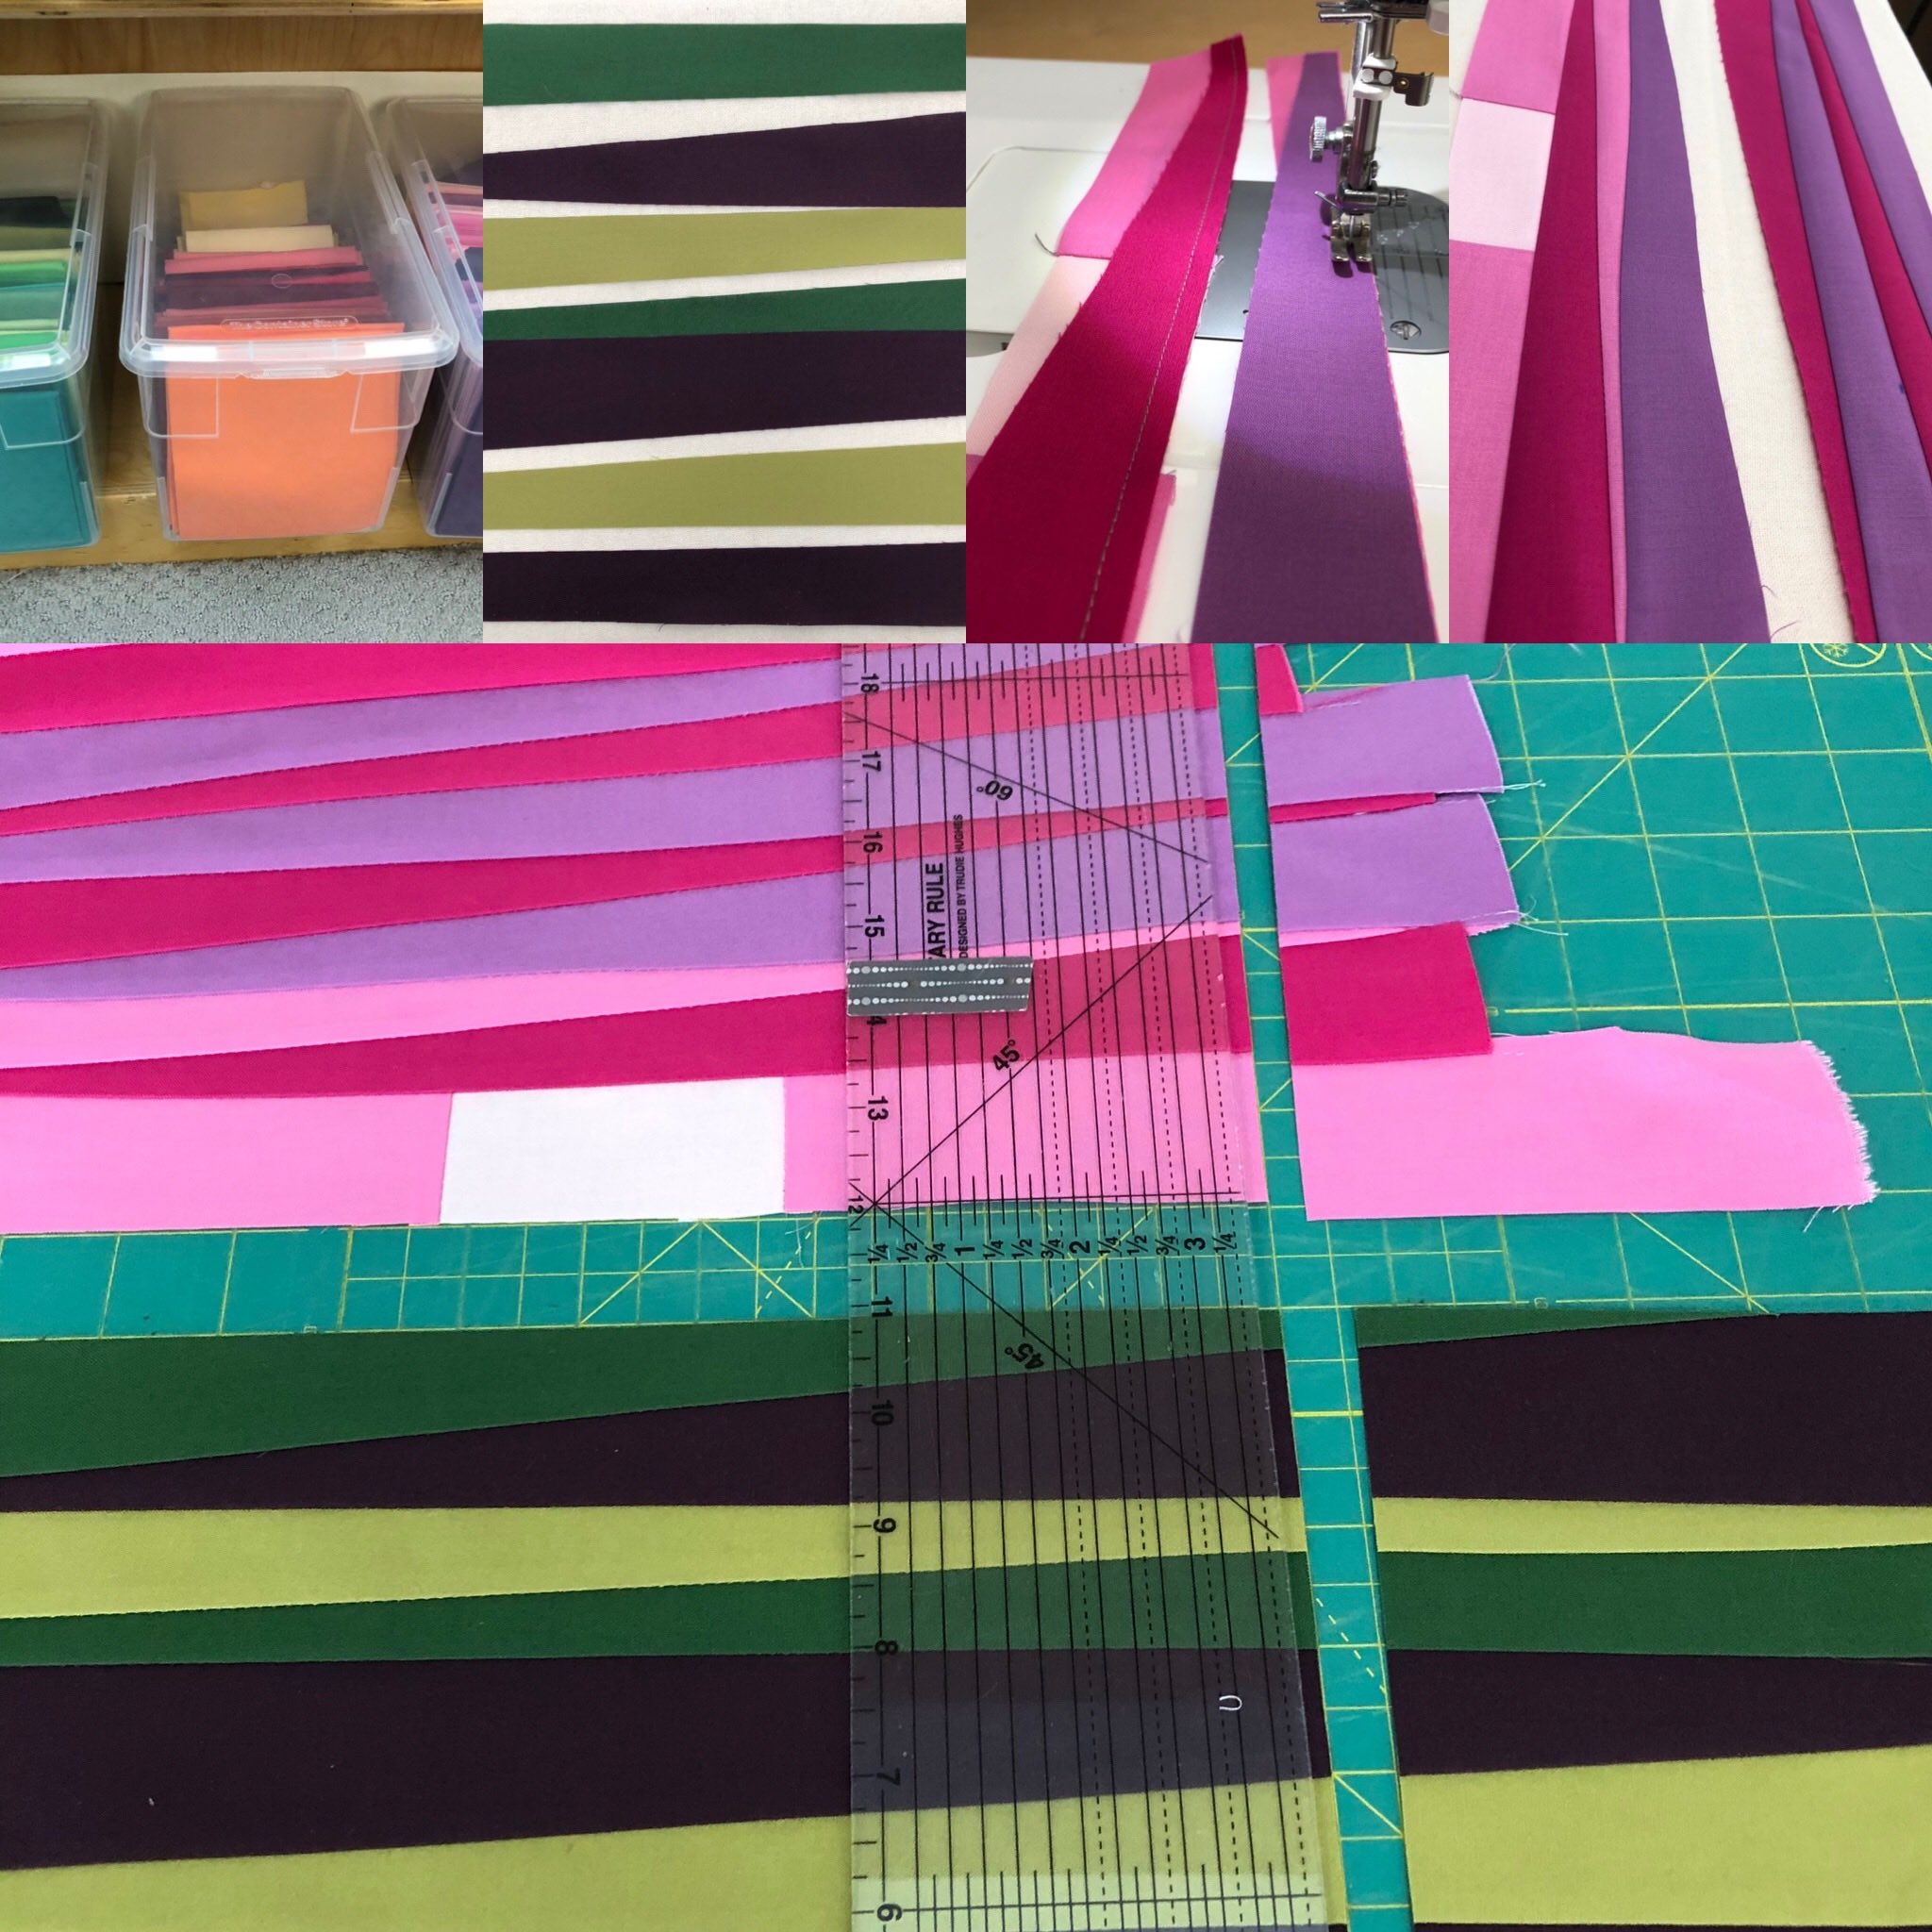 "Upper Left to Right: Fabric bins, Wedges for fields, Sewing wedges together, Sewing groups of wedges together.  Lower section: Sky and land cut to 13"" and ready to sew together at the horizon."